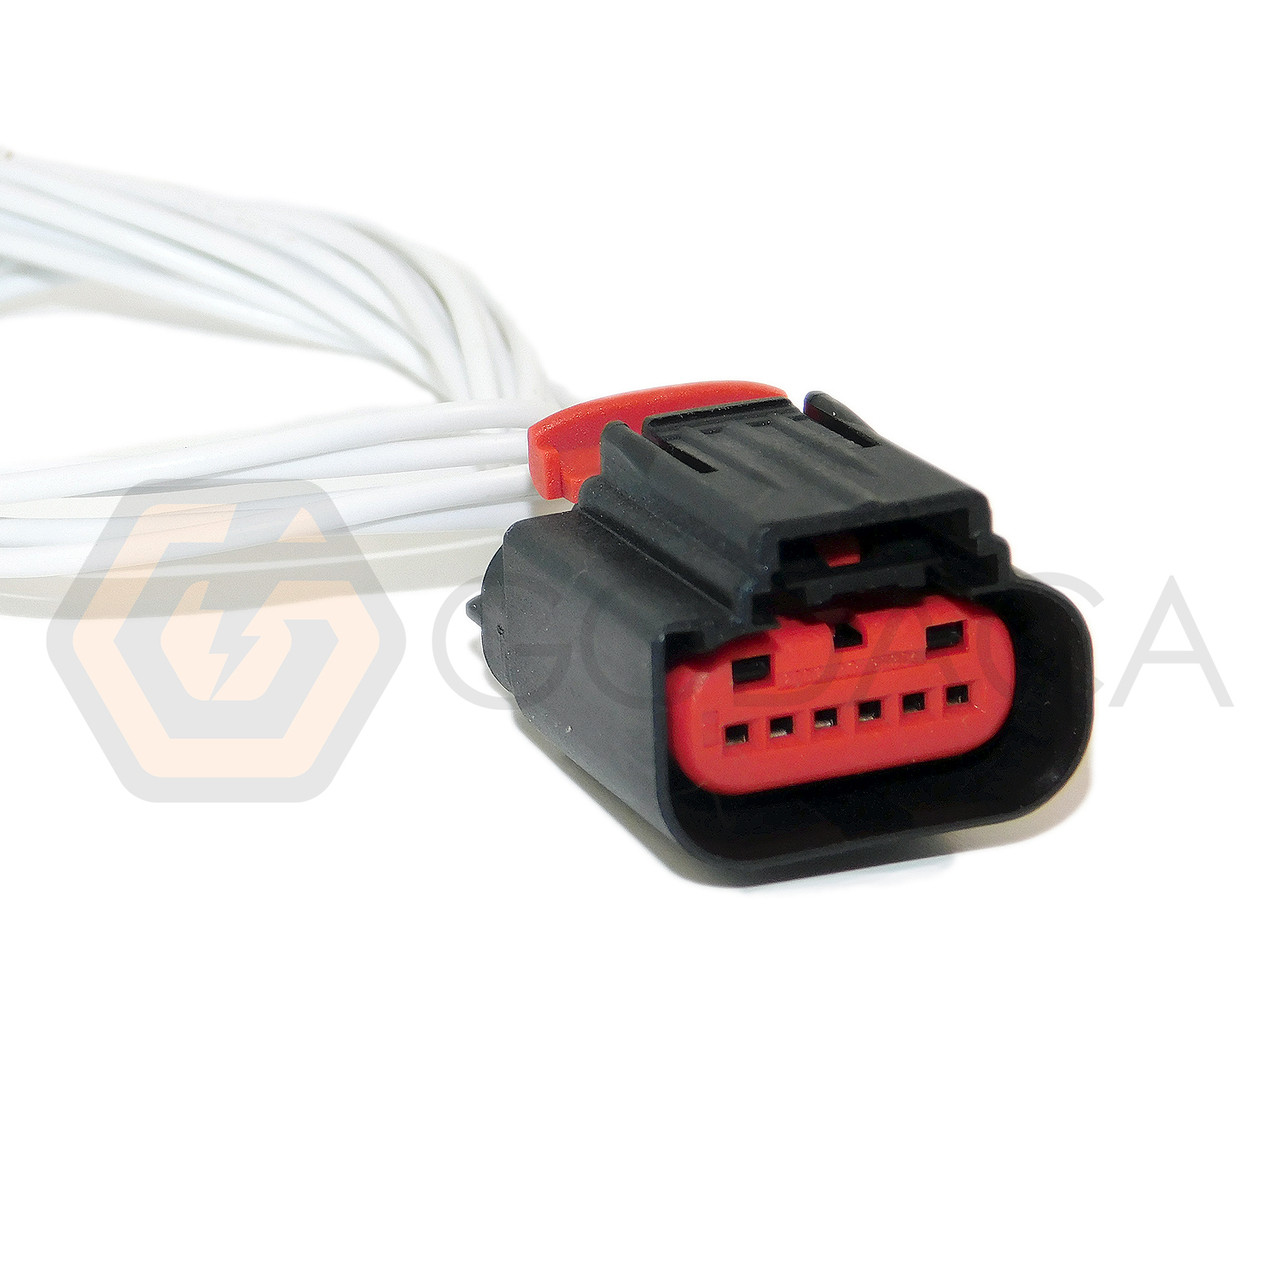 hight resolution of 1x connector 6 way 6 pin for mass air flow sensor ford wpt 1241 godaca llc